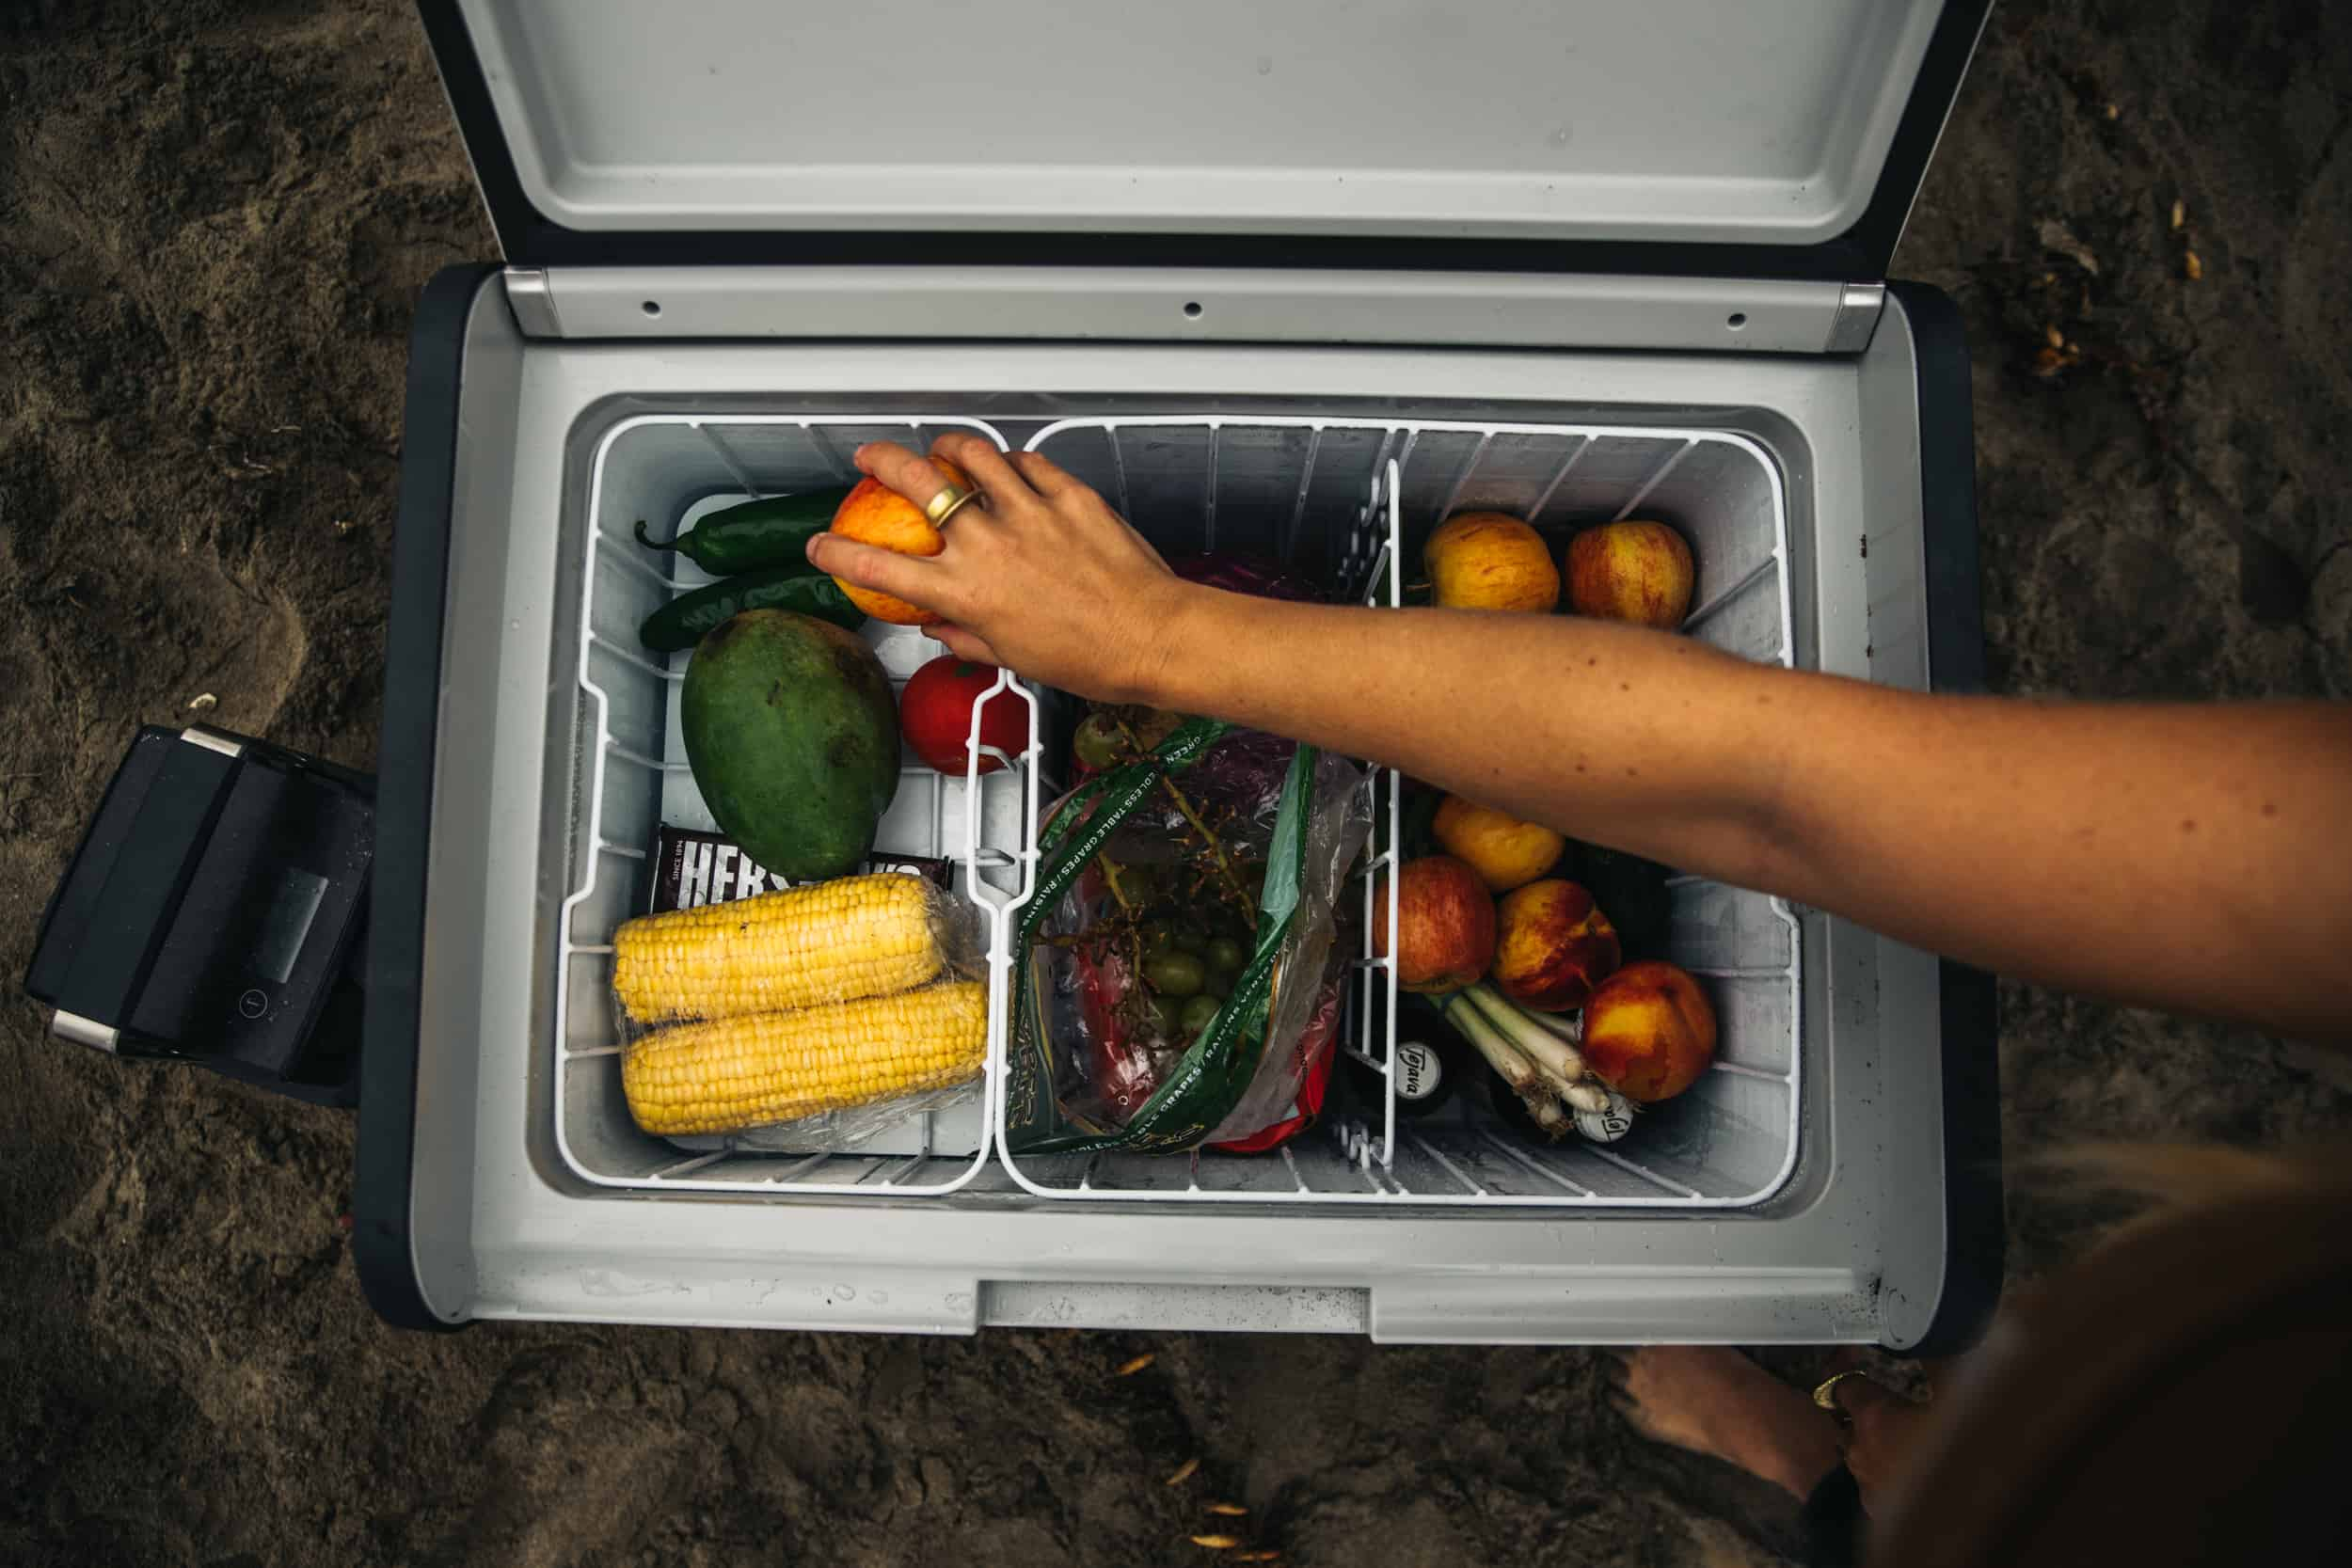 Dometic CFX3 55IM with lots of fruits and veggies in the 12V portable fridge